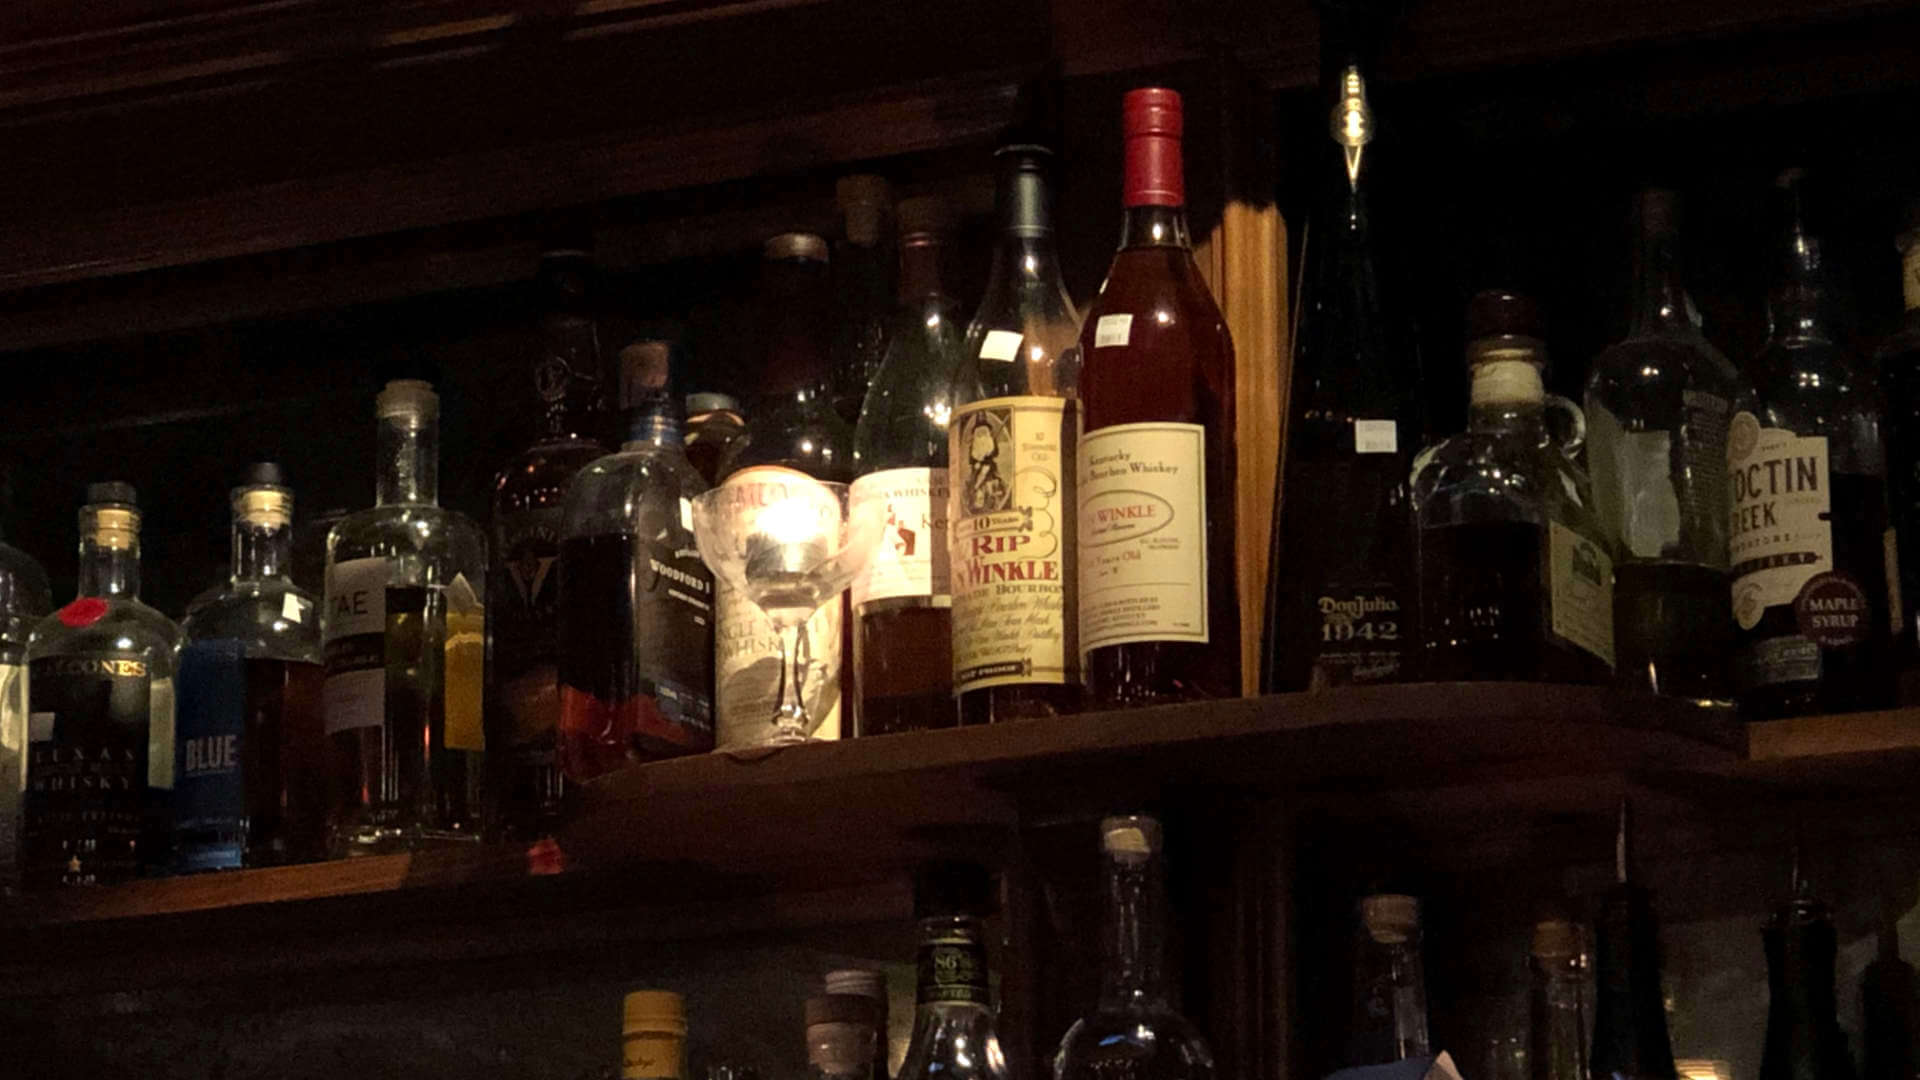 That bottle of Old Rip Van Winkle raises the average value of liquor as this bar we visited dramatically. But that doesn't mean we spent more on drinks than normal!